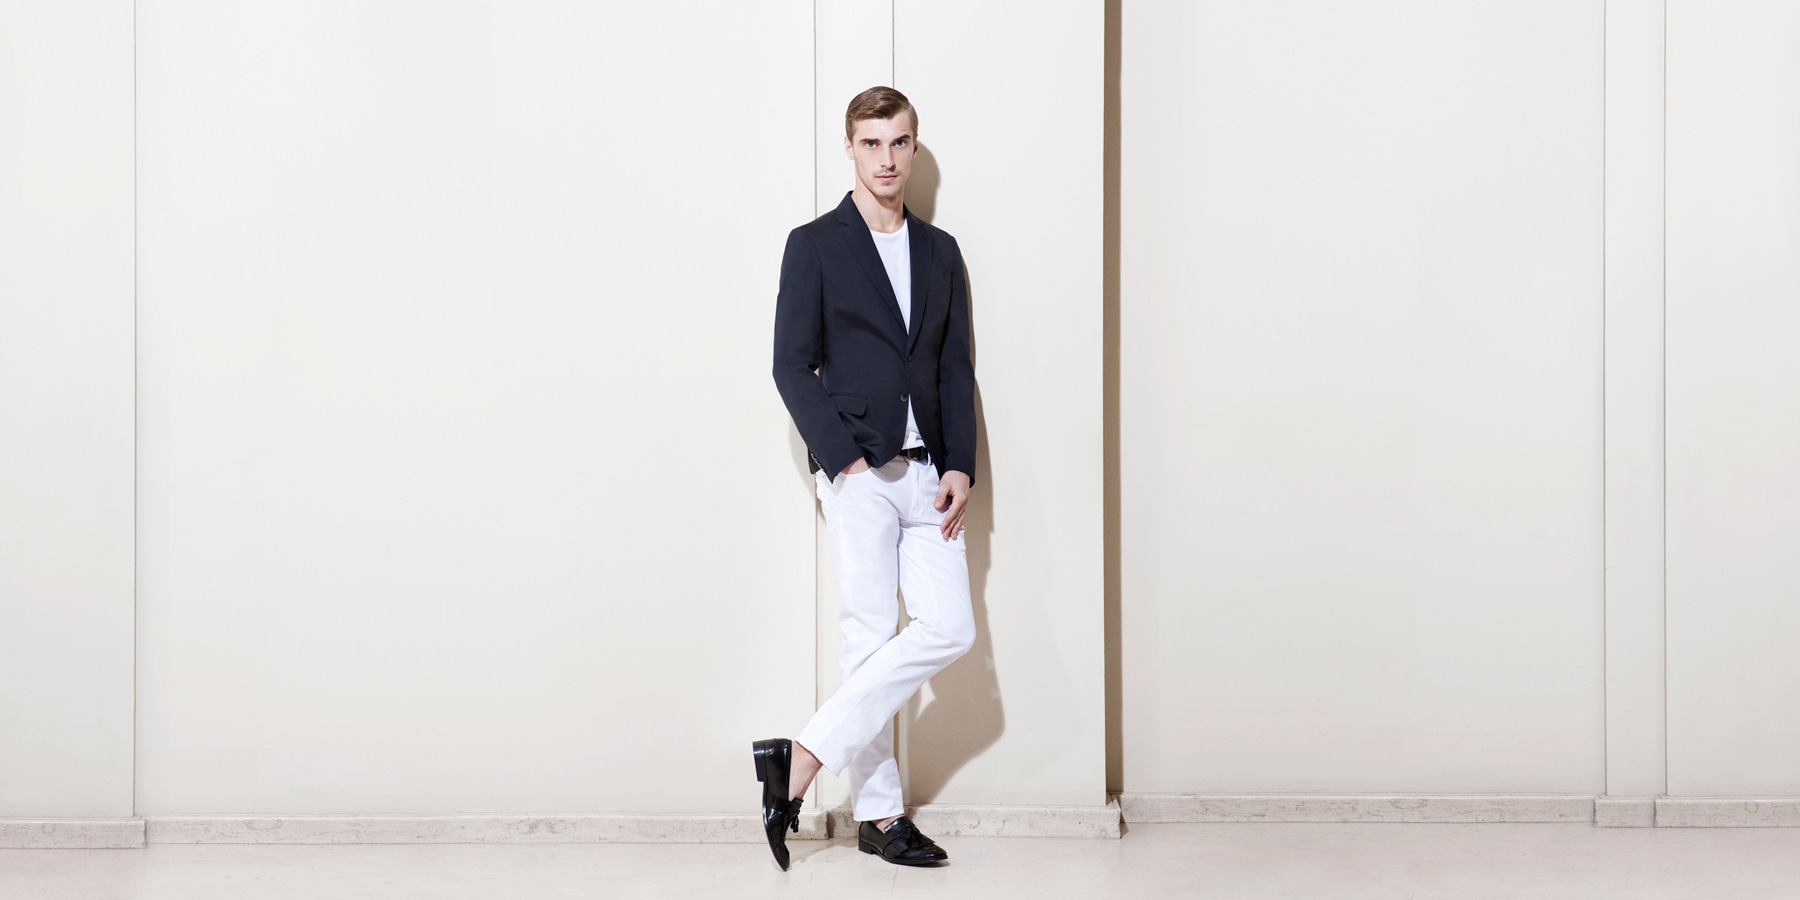 zara brand The mag brand for today is non other than zara ortega and his business partner rosalia mera opened their first store in the city of a coruna, close to artei.